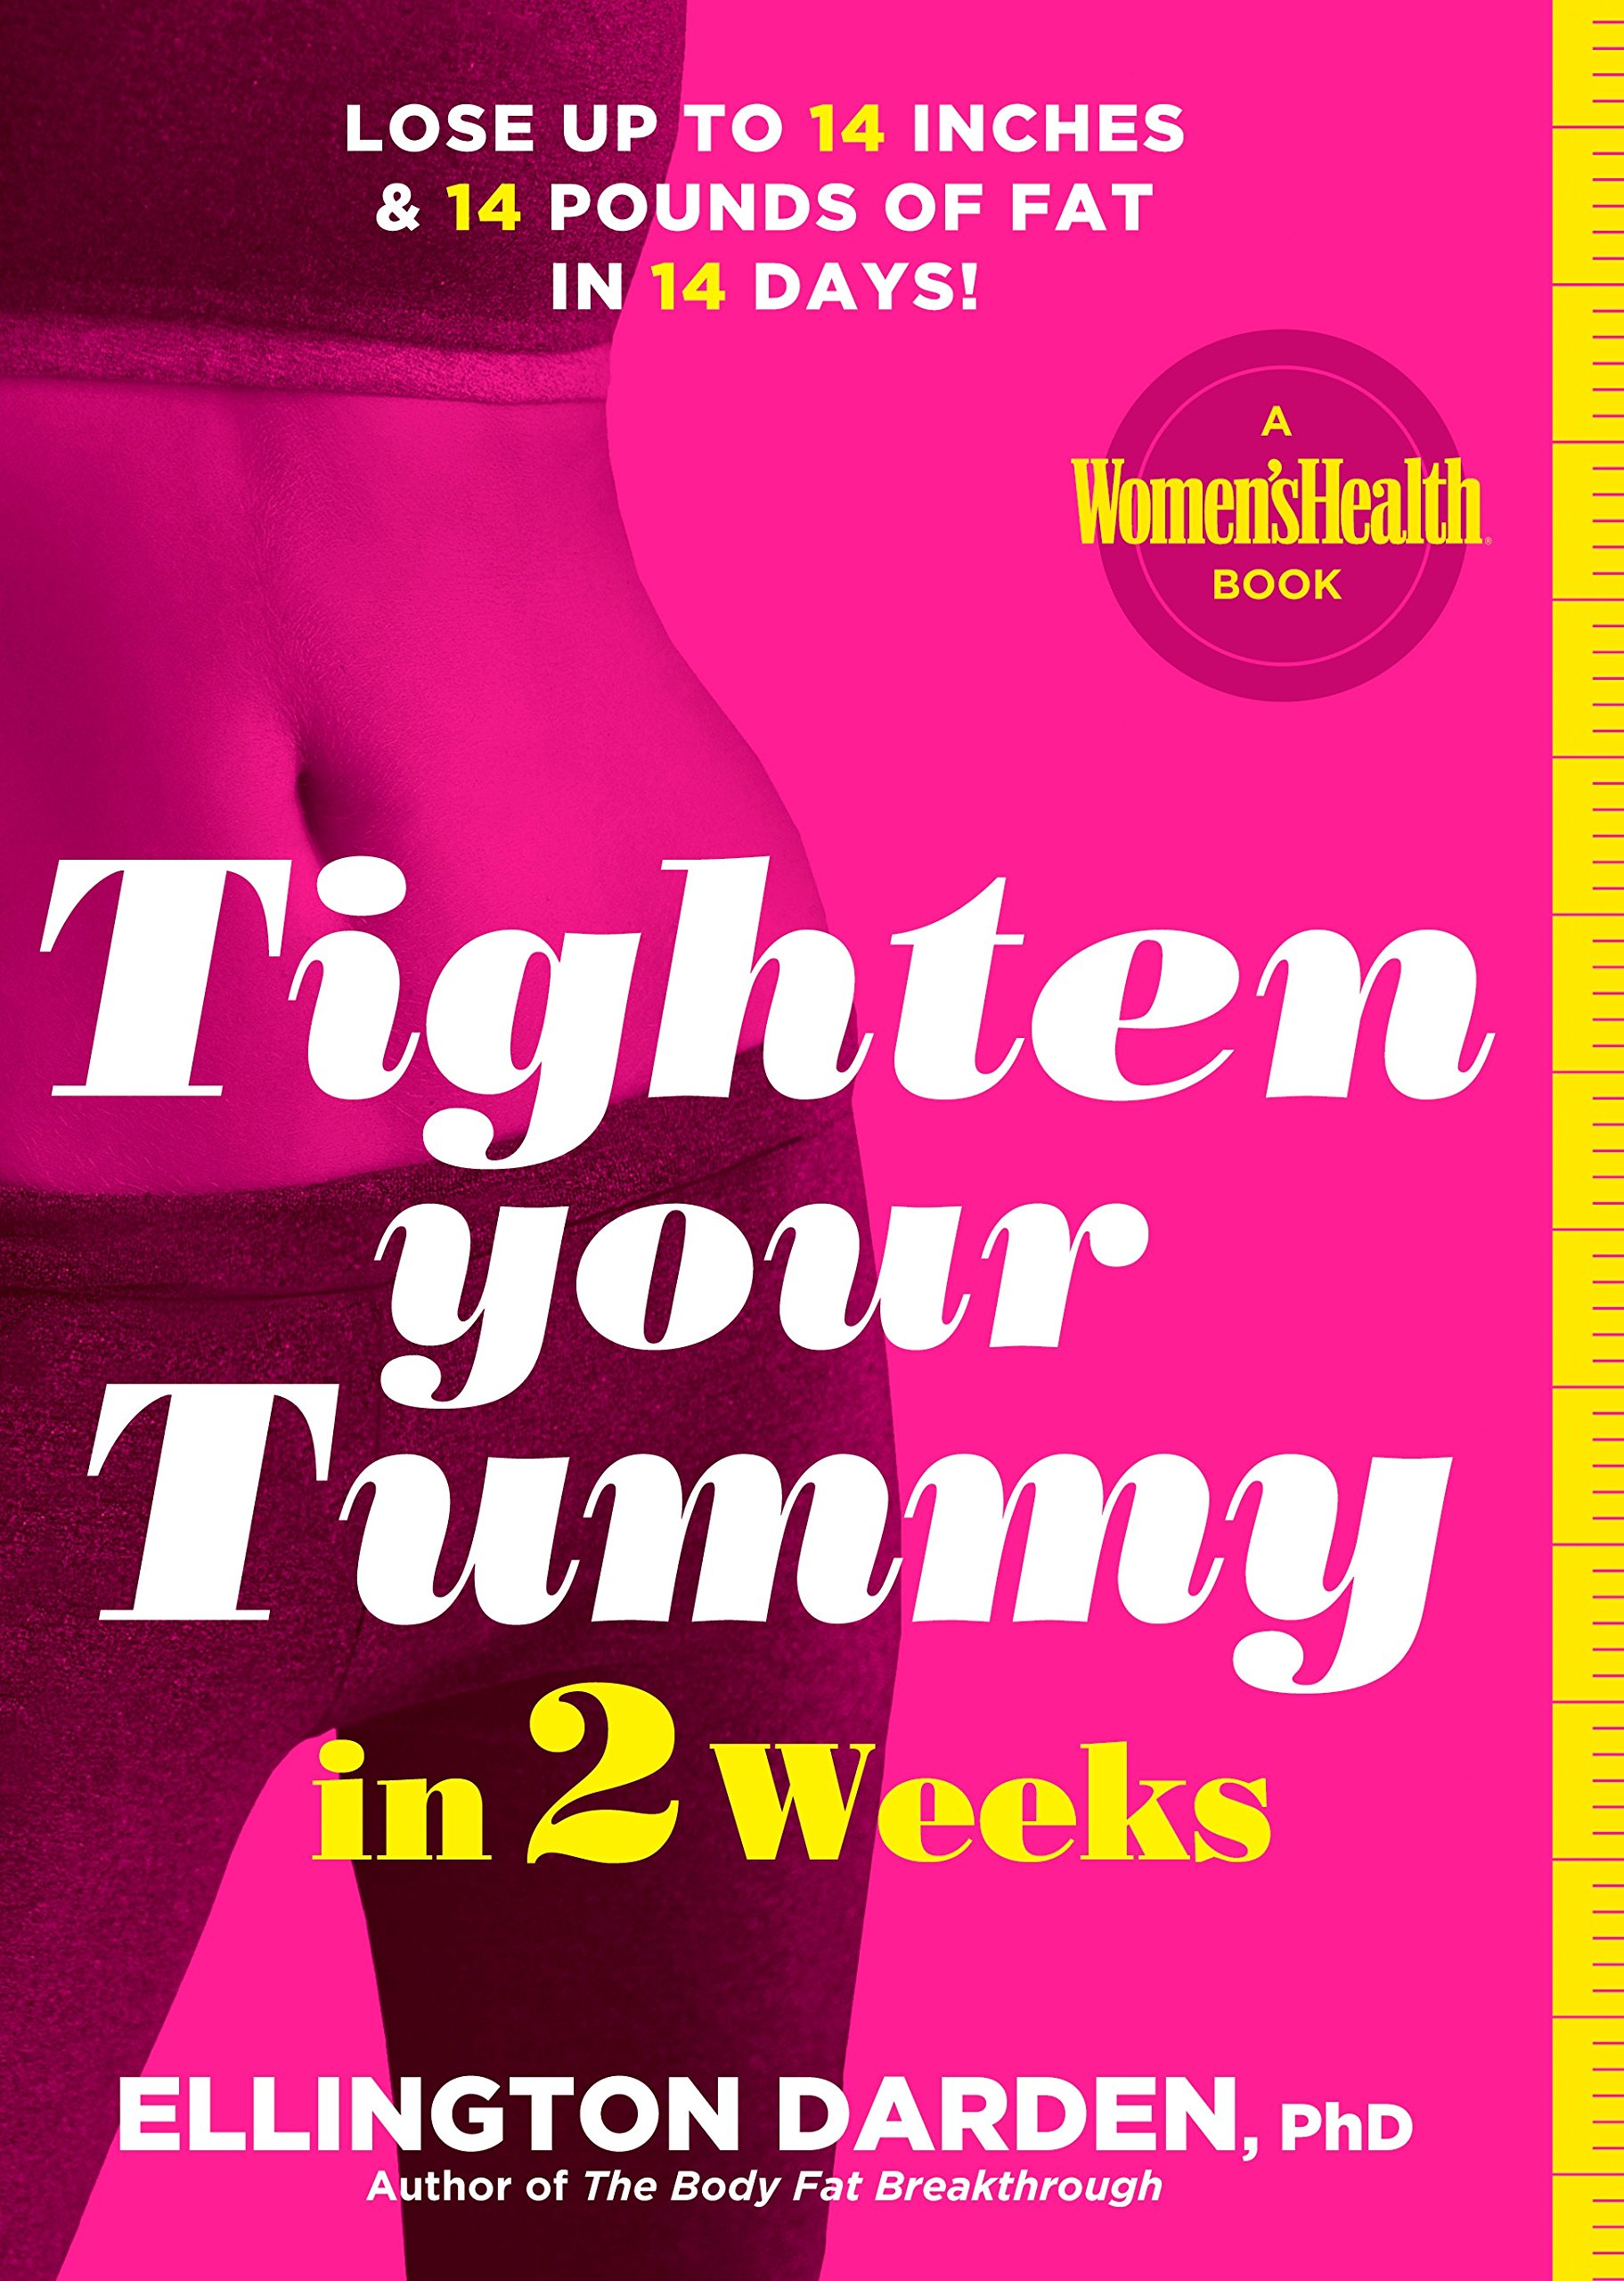 Tighten Your Tummy In 2 Weeks Lose Up To 14 Inches 14 Pounds Of Fat In 14 Days Darden Phd Ellington 9781623365714 Amazon Com Books